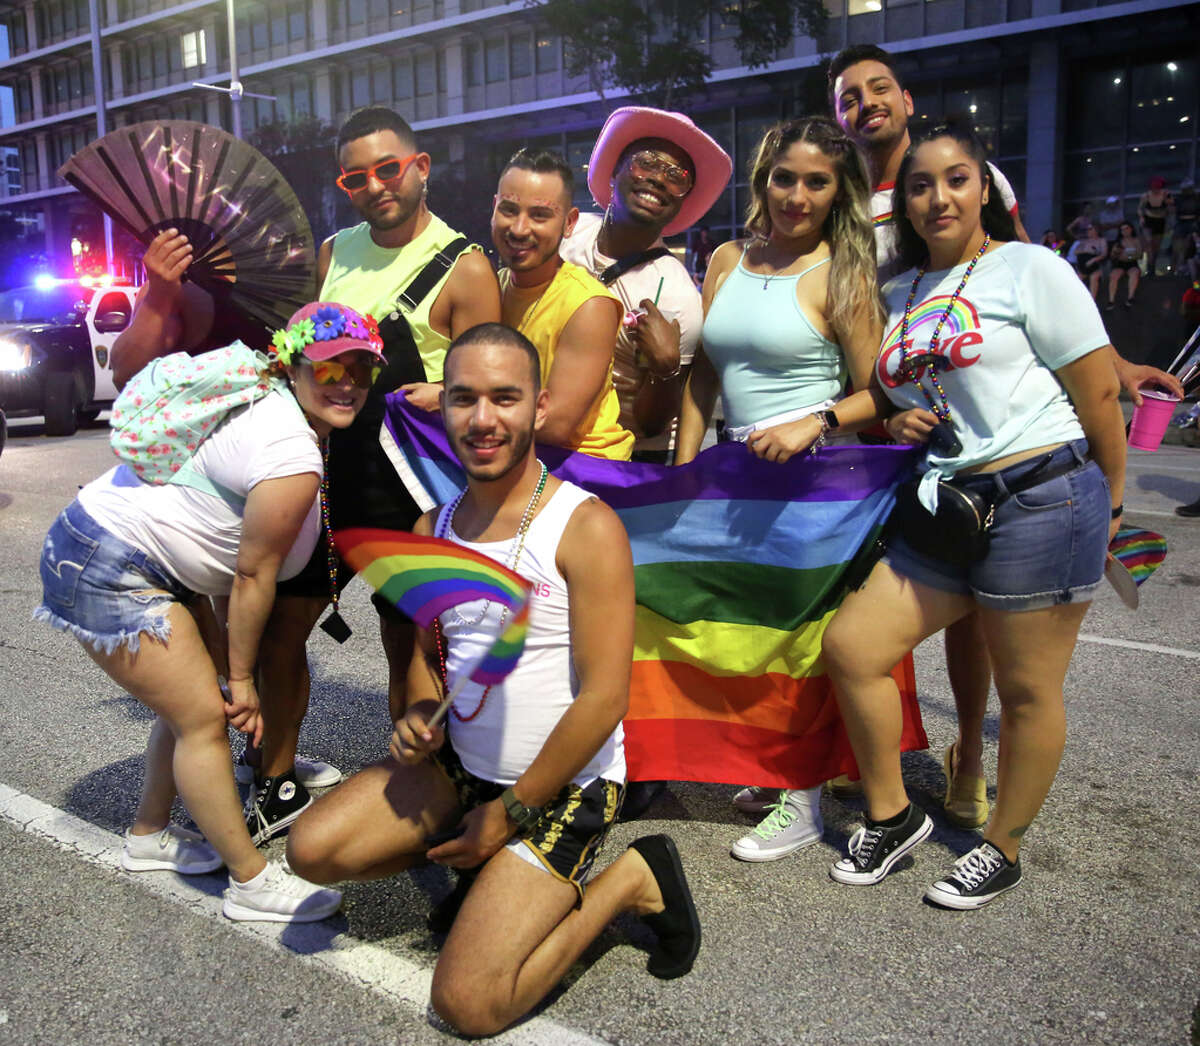 People pose for photos at the 2019 Houston Pride Parade in Downton Houston, Saturday, June 22, 2019.